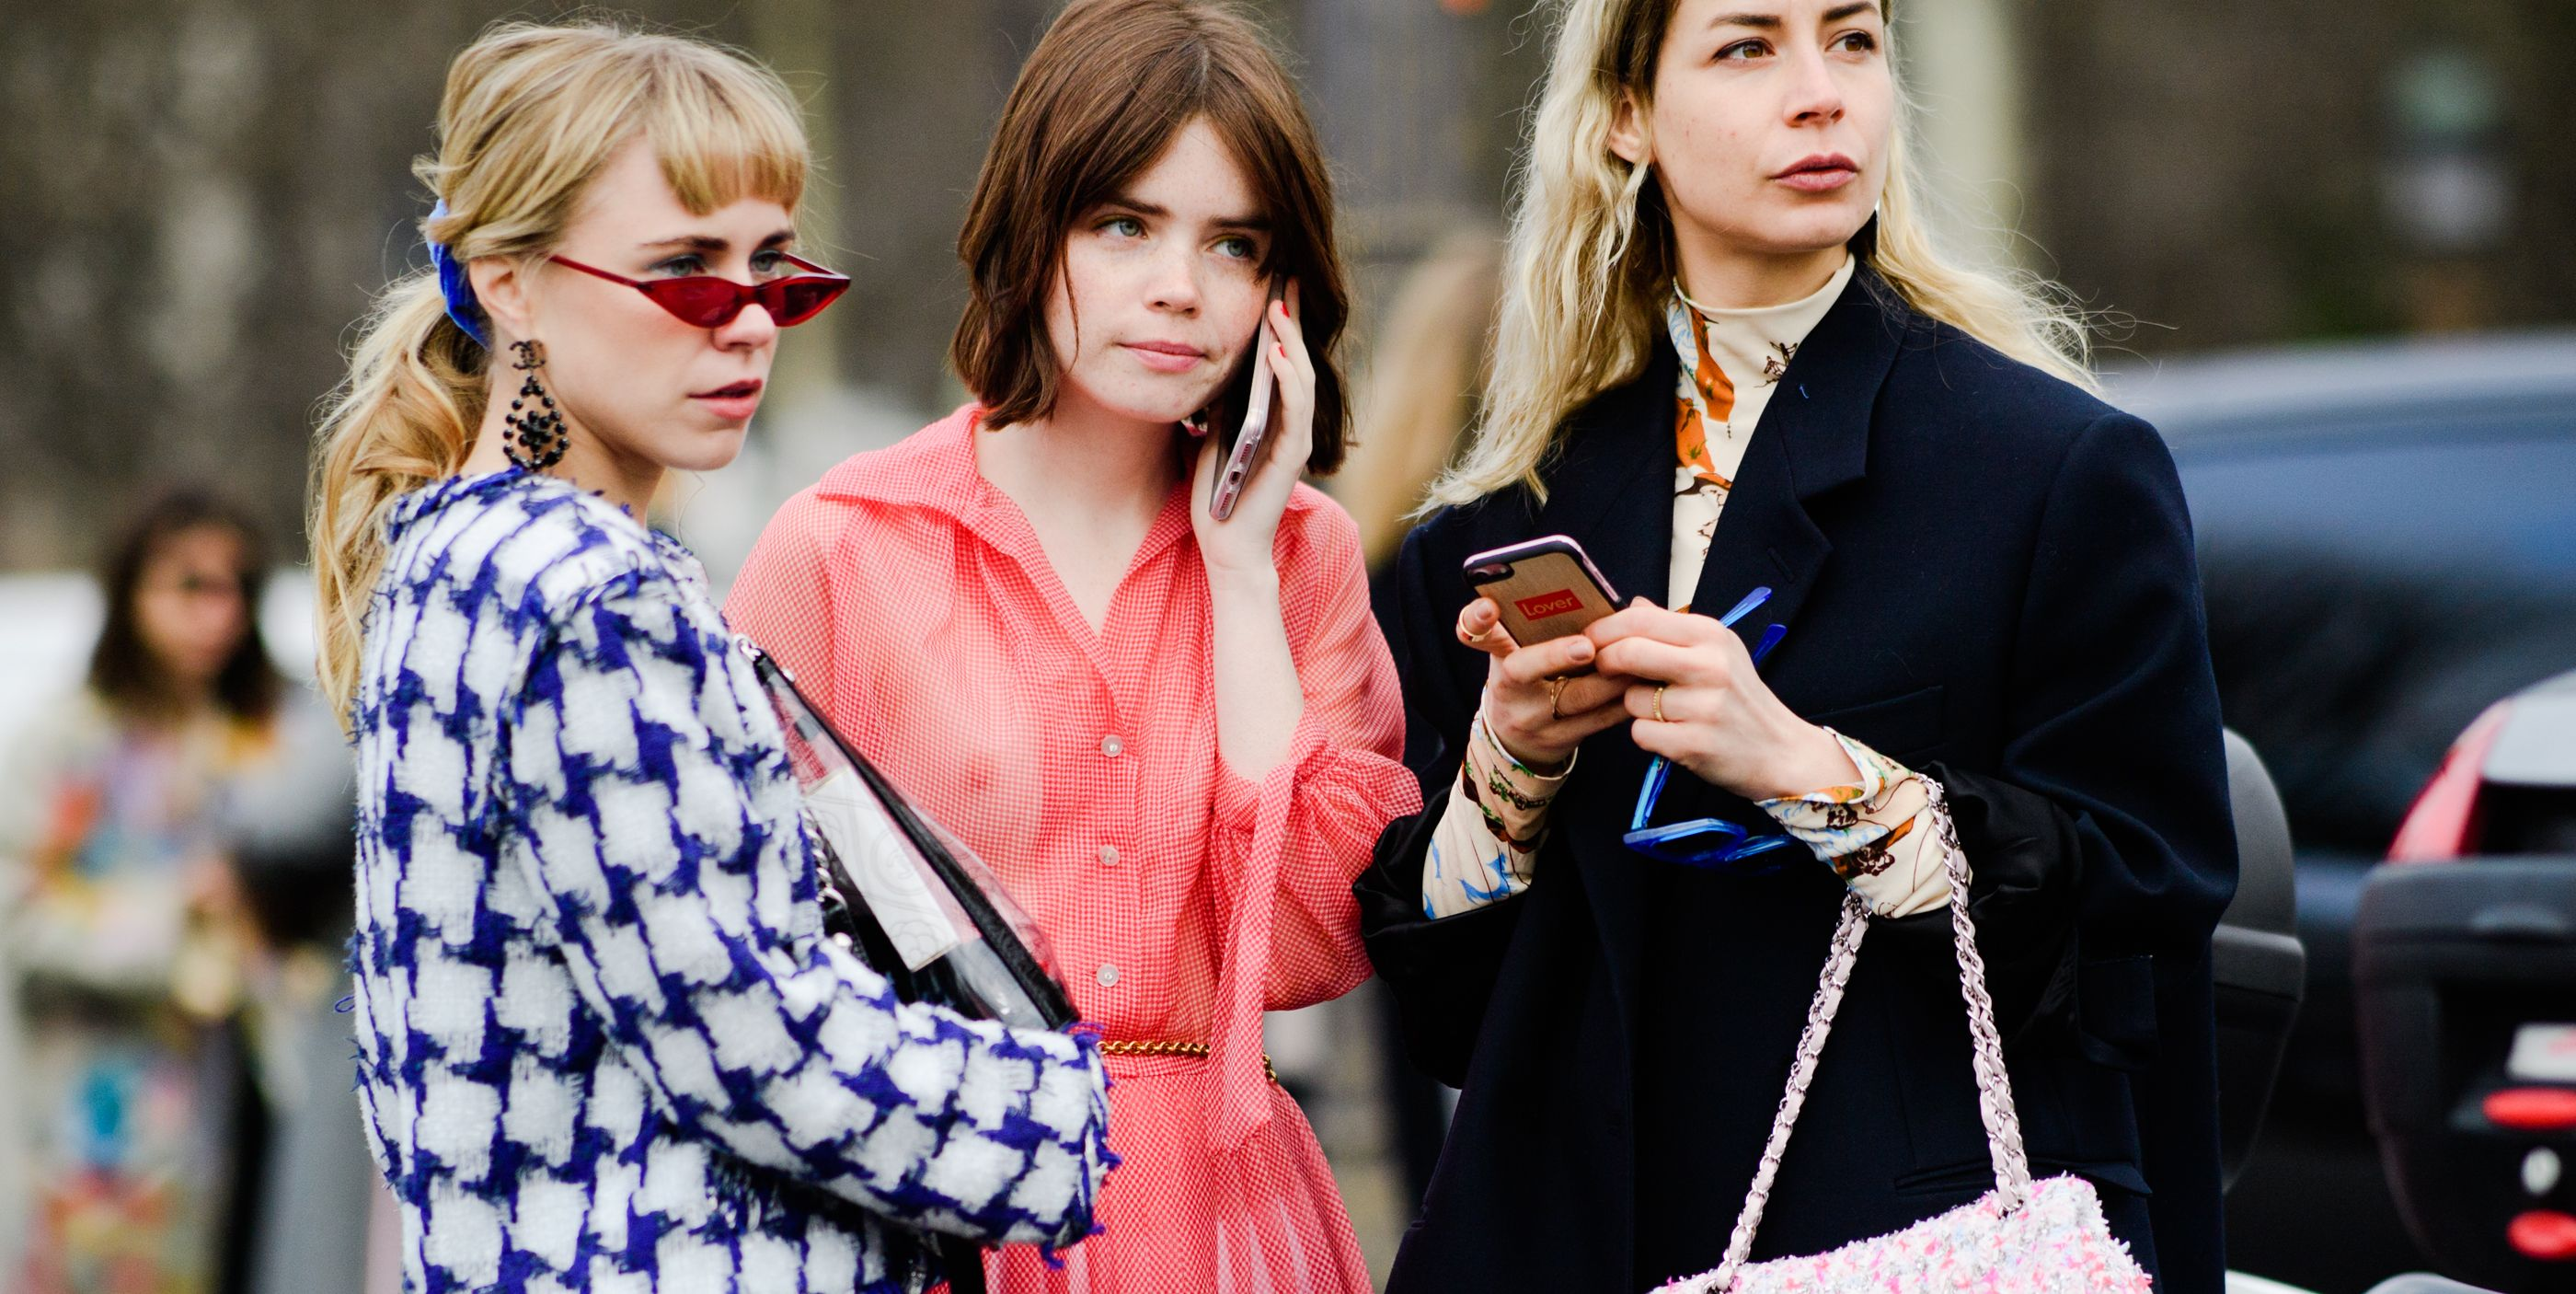 Street Style 2018 - Chic Concert, Festival, and Fashion Week Street Looks - Elle